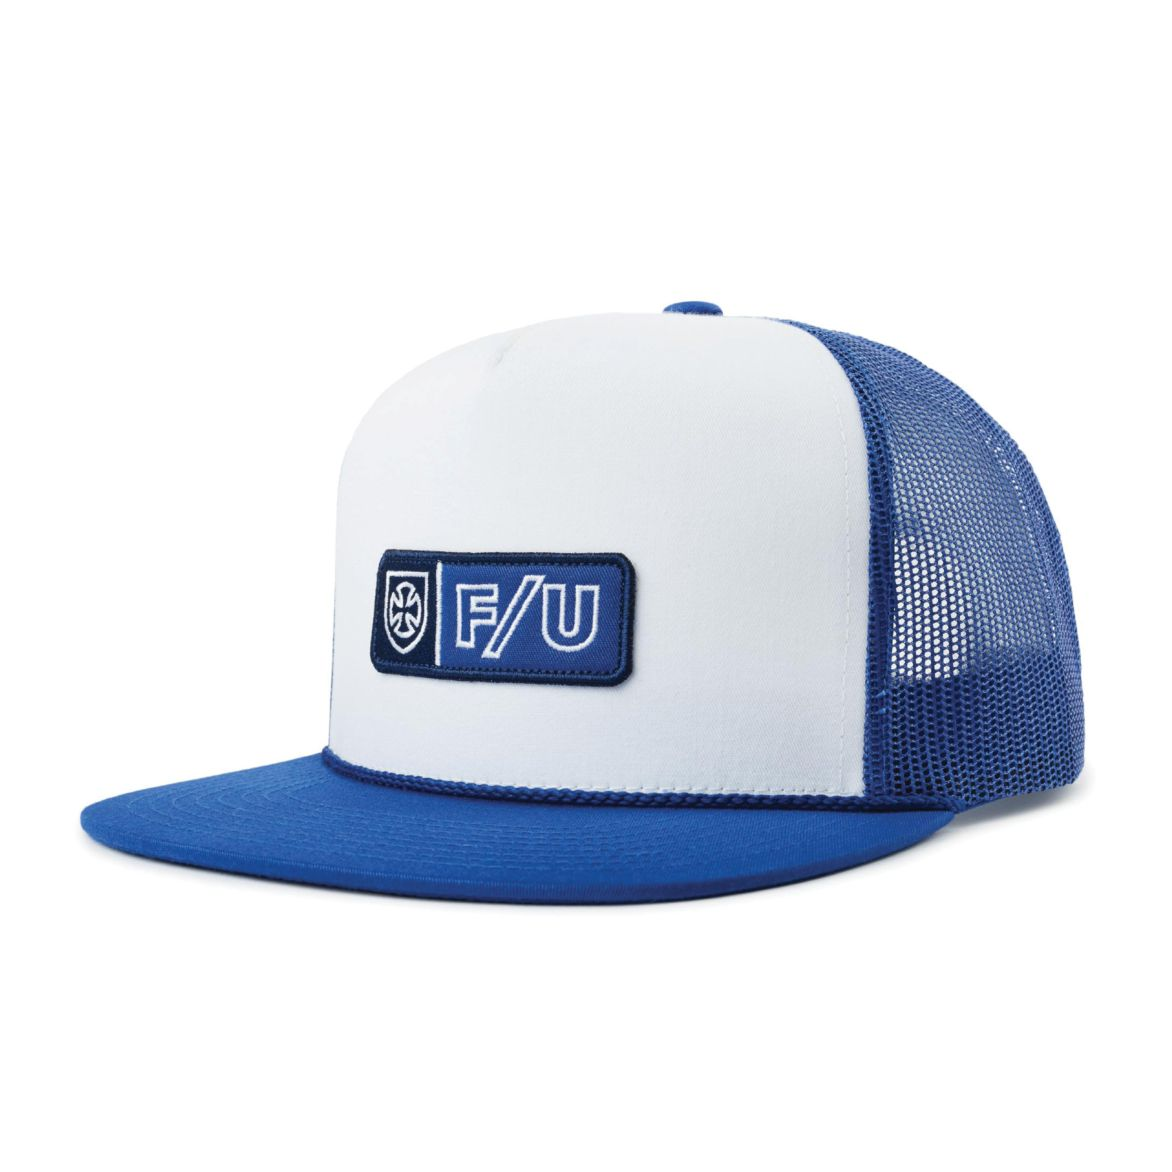 브릭스톤x인디펜던트 모자TURNPIKE HP MESH CAP ROYAL/WHITEBRIXTON